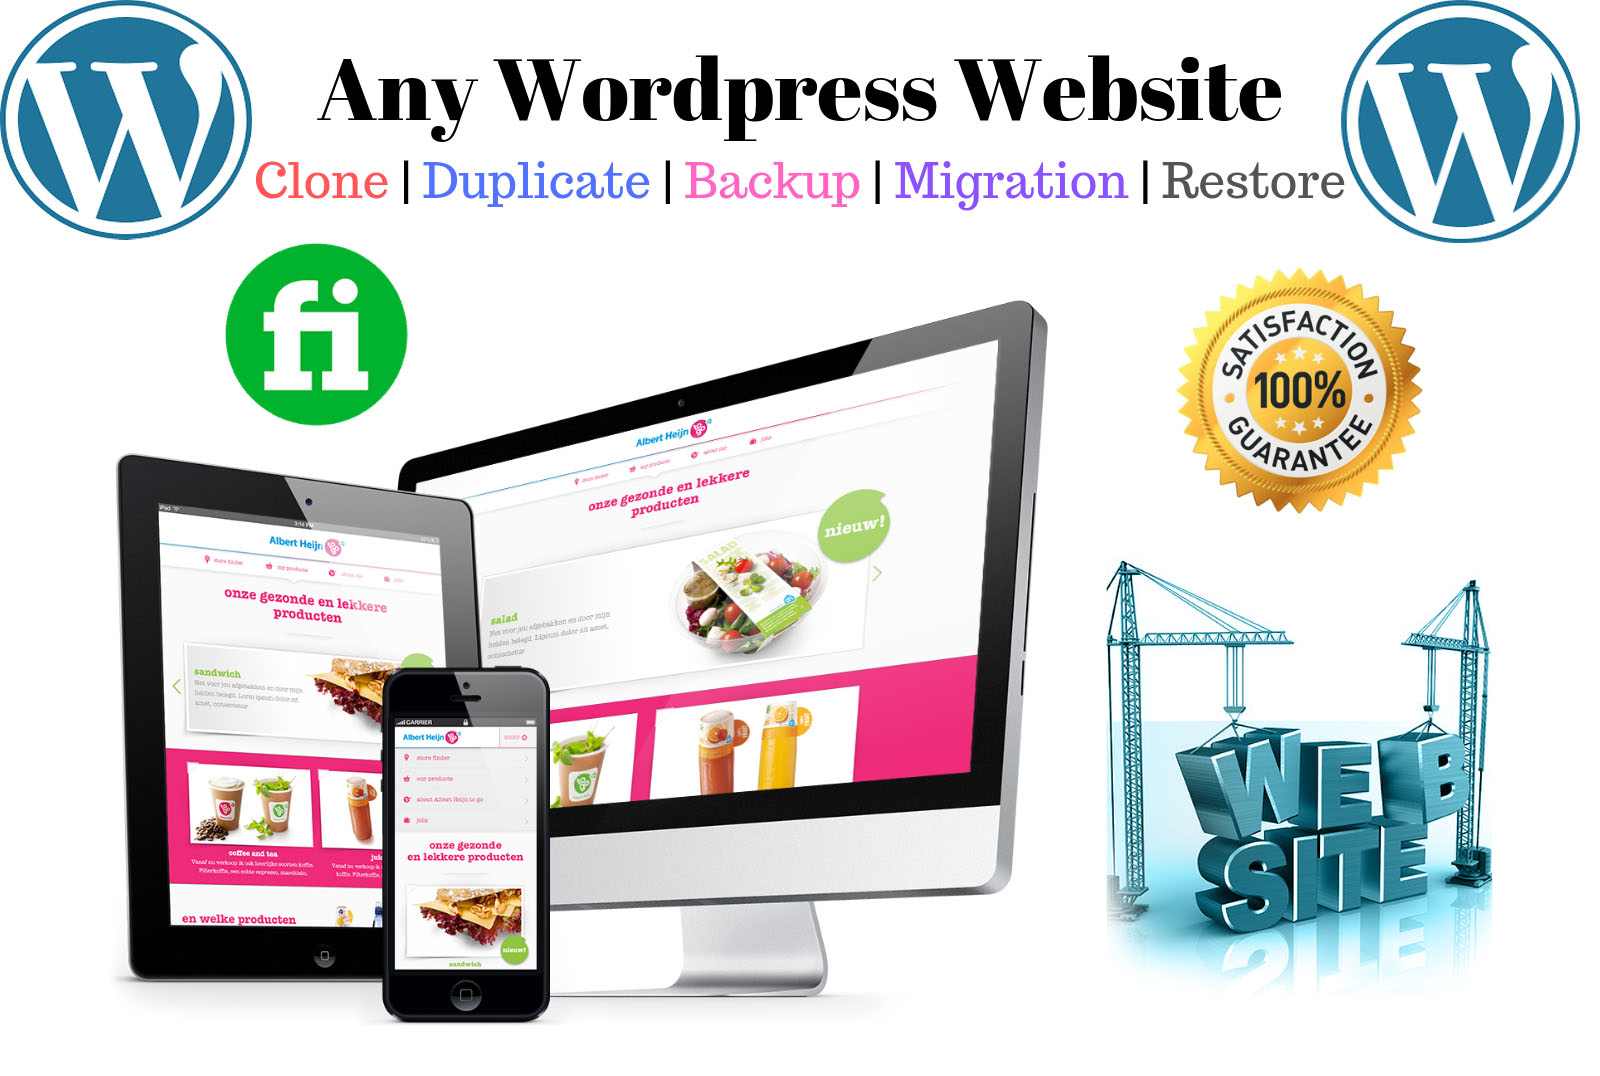 I will do any website clone migration backup